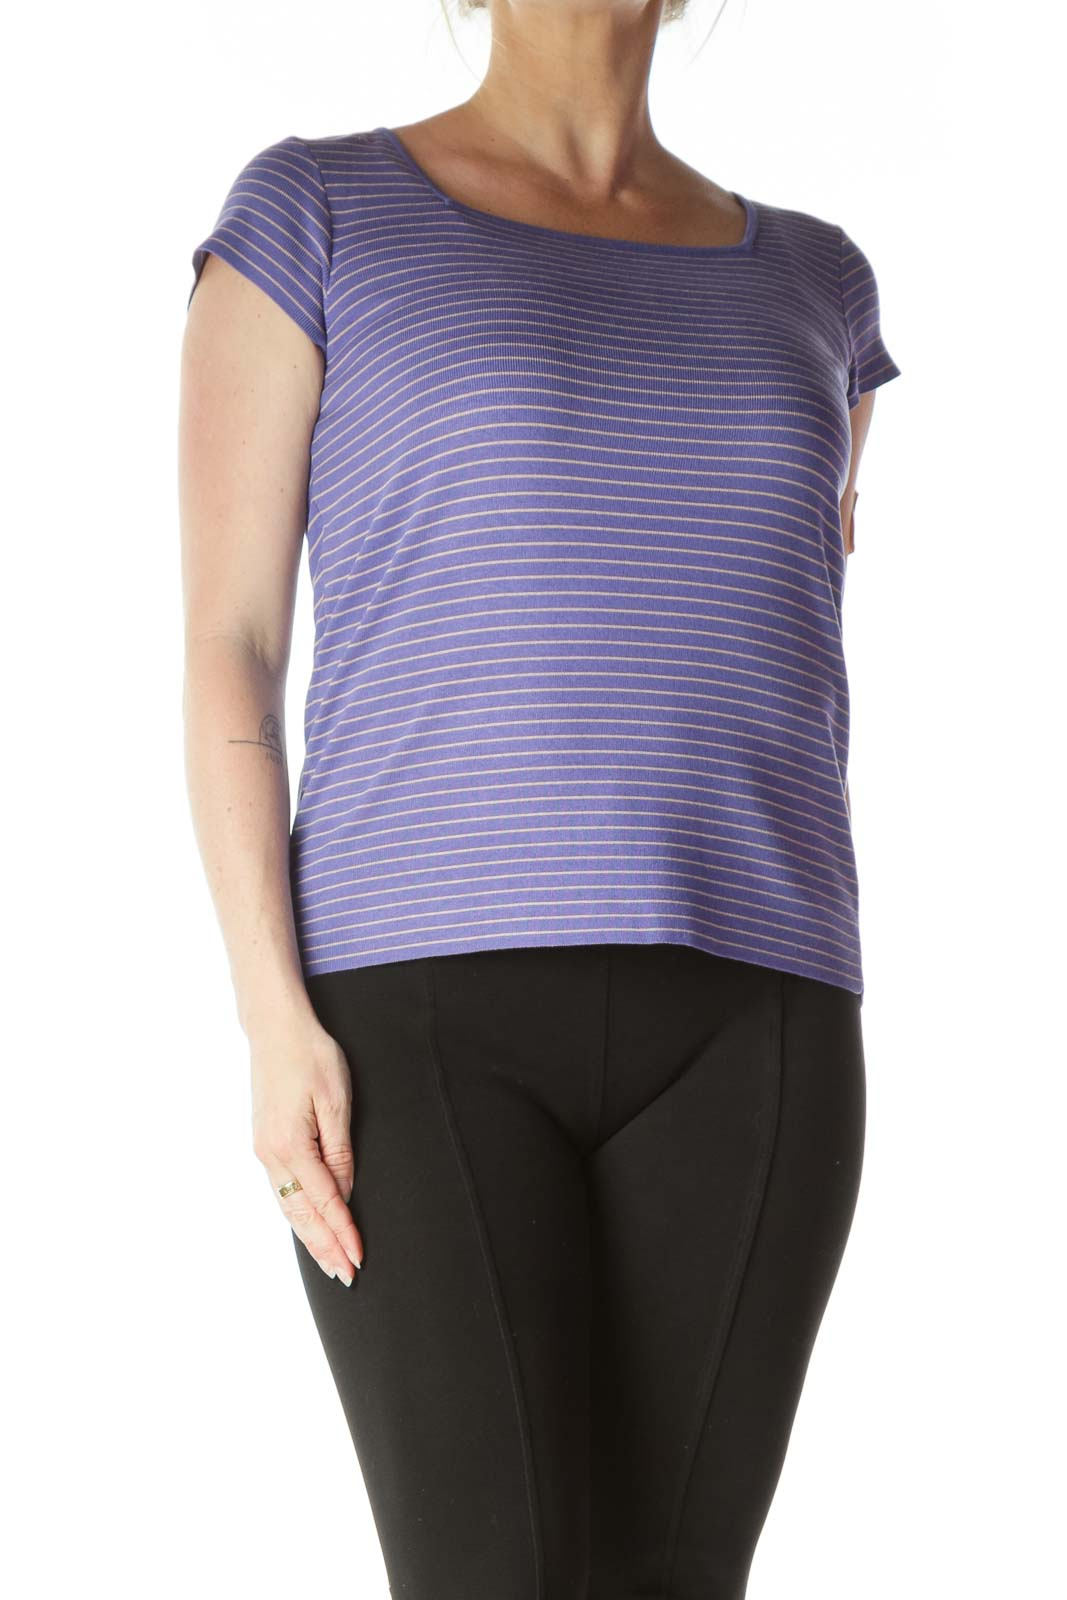 Purple Knit Square Neck Top Front